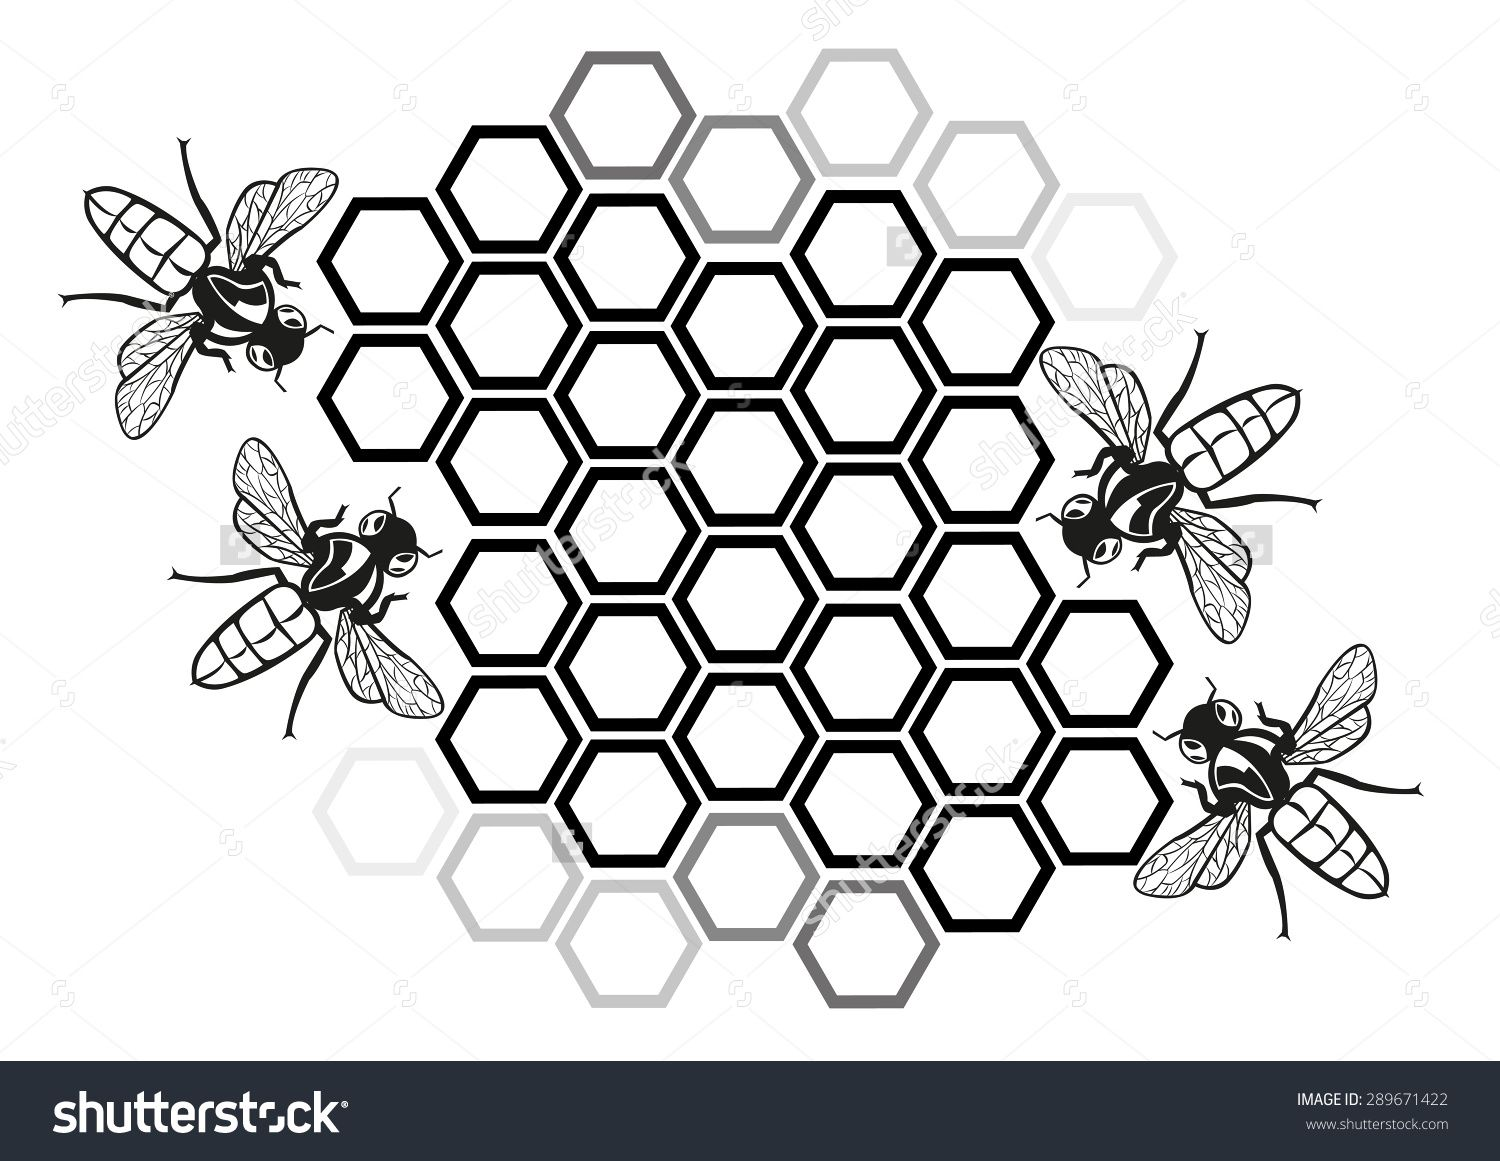 Flat honey bee in. Honeycomb clipart